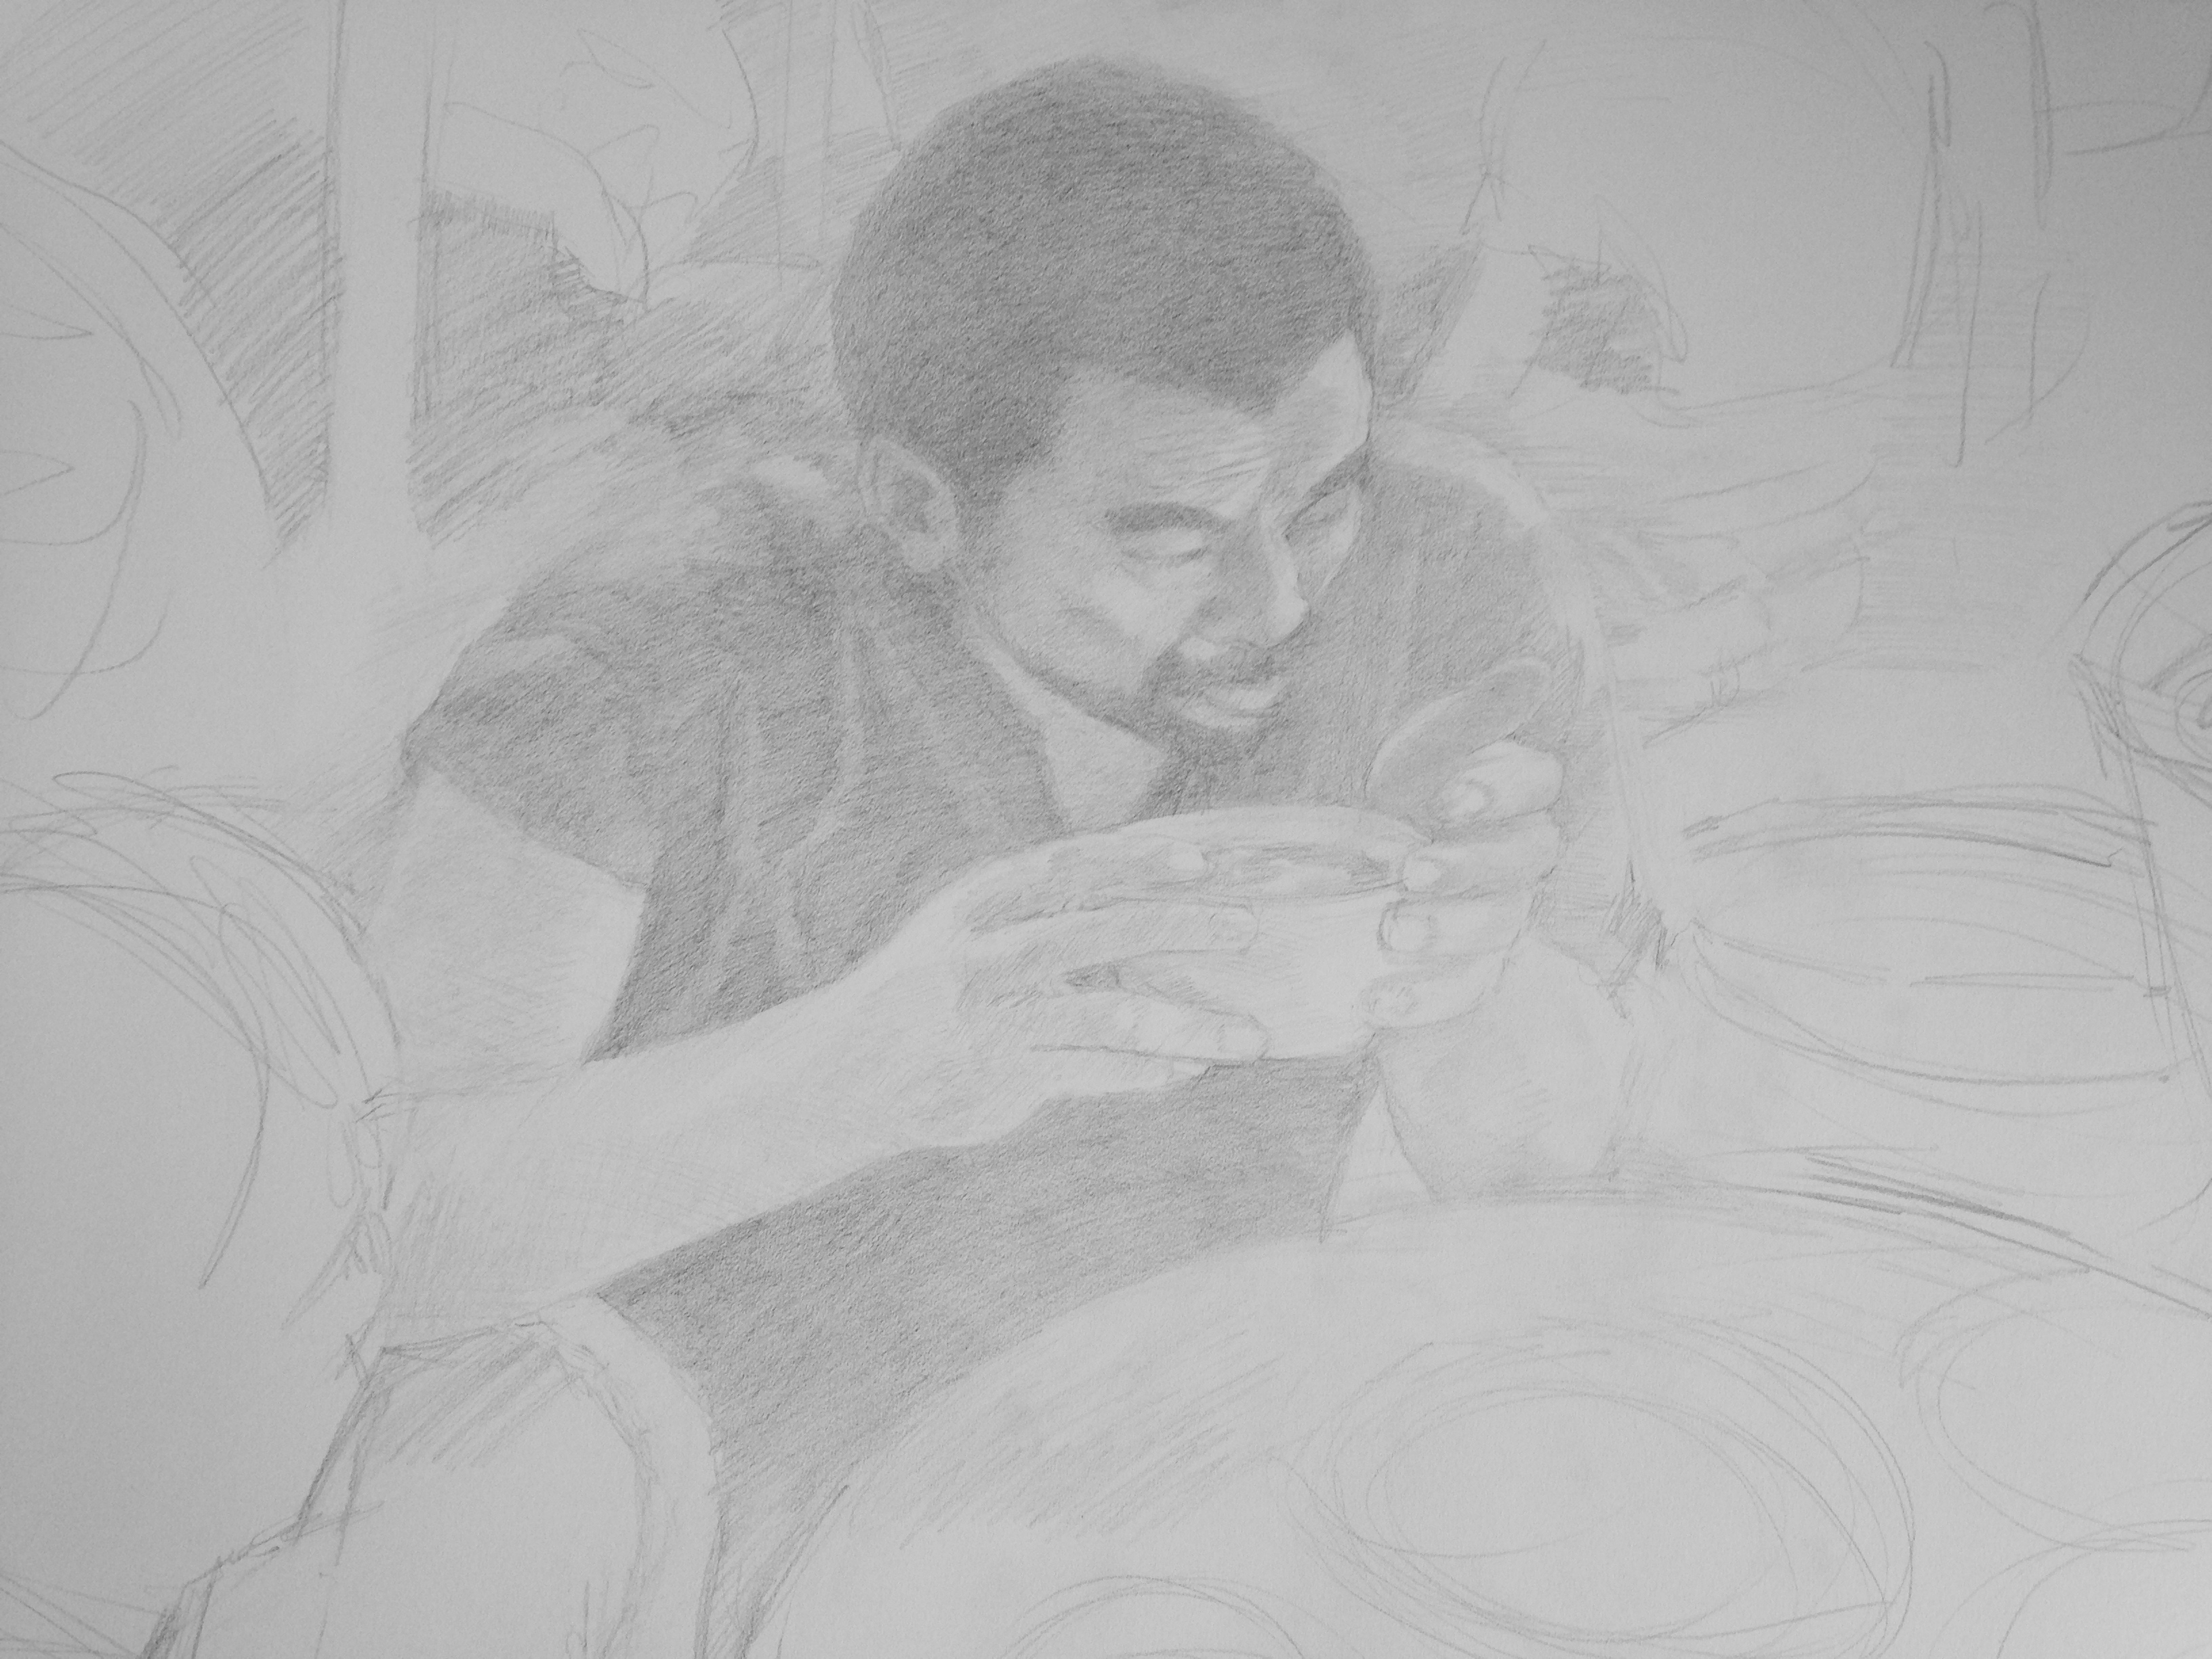 Chinese Man with Soup